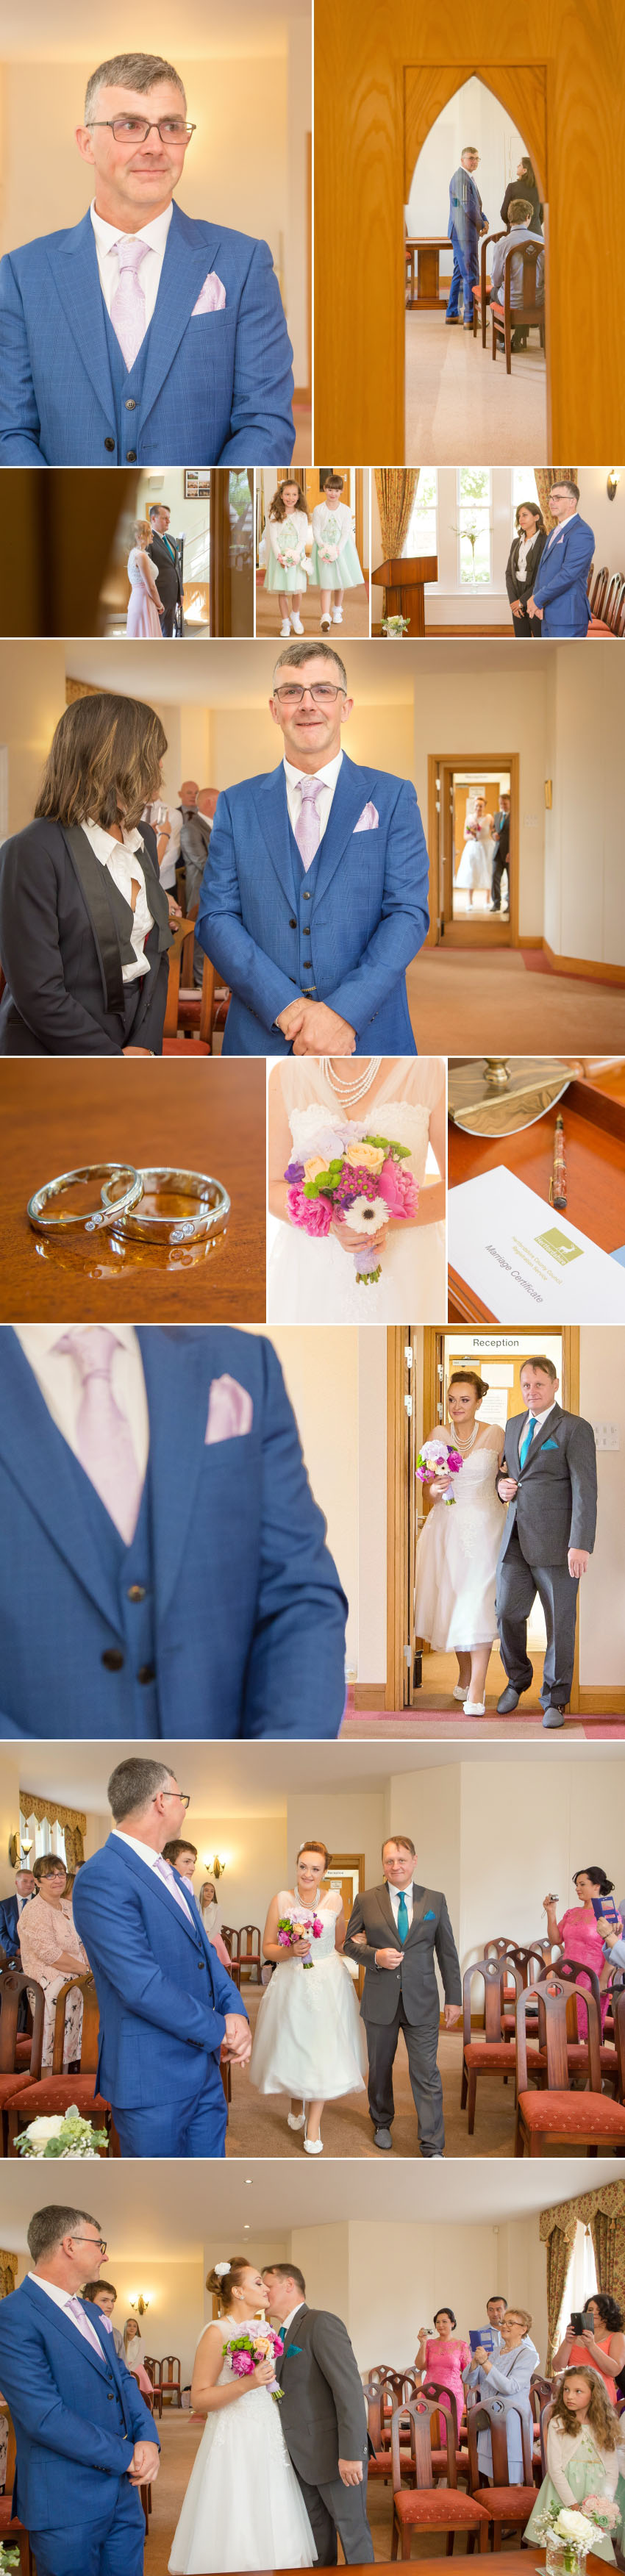 Wedding photography St Albans Register Office 03